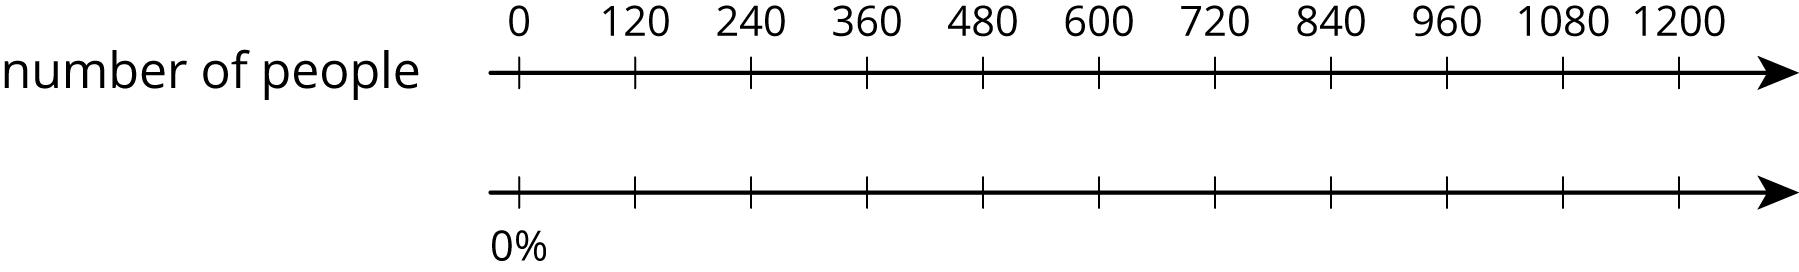 """A double number line for """"number of people"""" with 11 evenly spaced tick marks. The top number line, starting with the first tick mark, has the numbers zero, 120, 240, 360, 480, 600, 720, 840, 960, 1080 and 1200 labeled. On the bottom number line zero percent is on the first tick mark and the remaining tick marks are not labeled."""